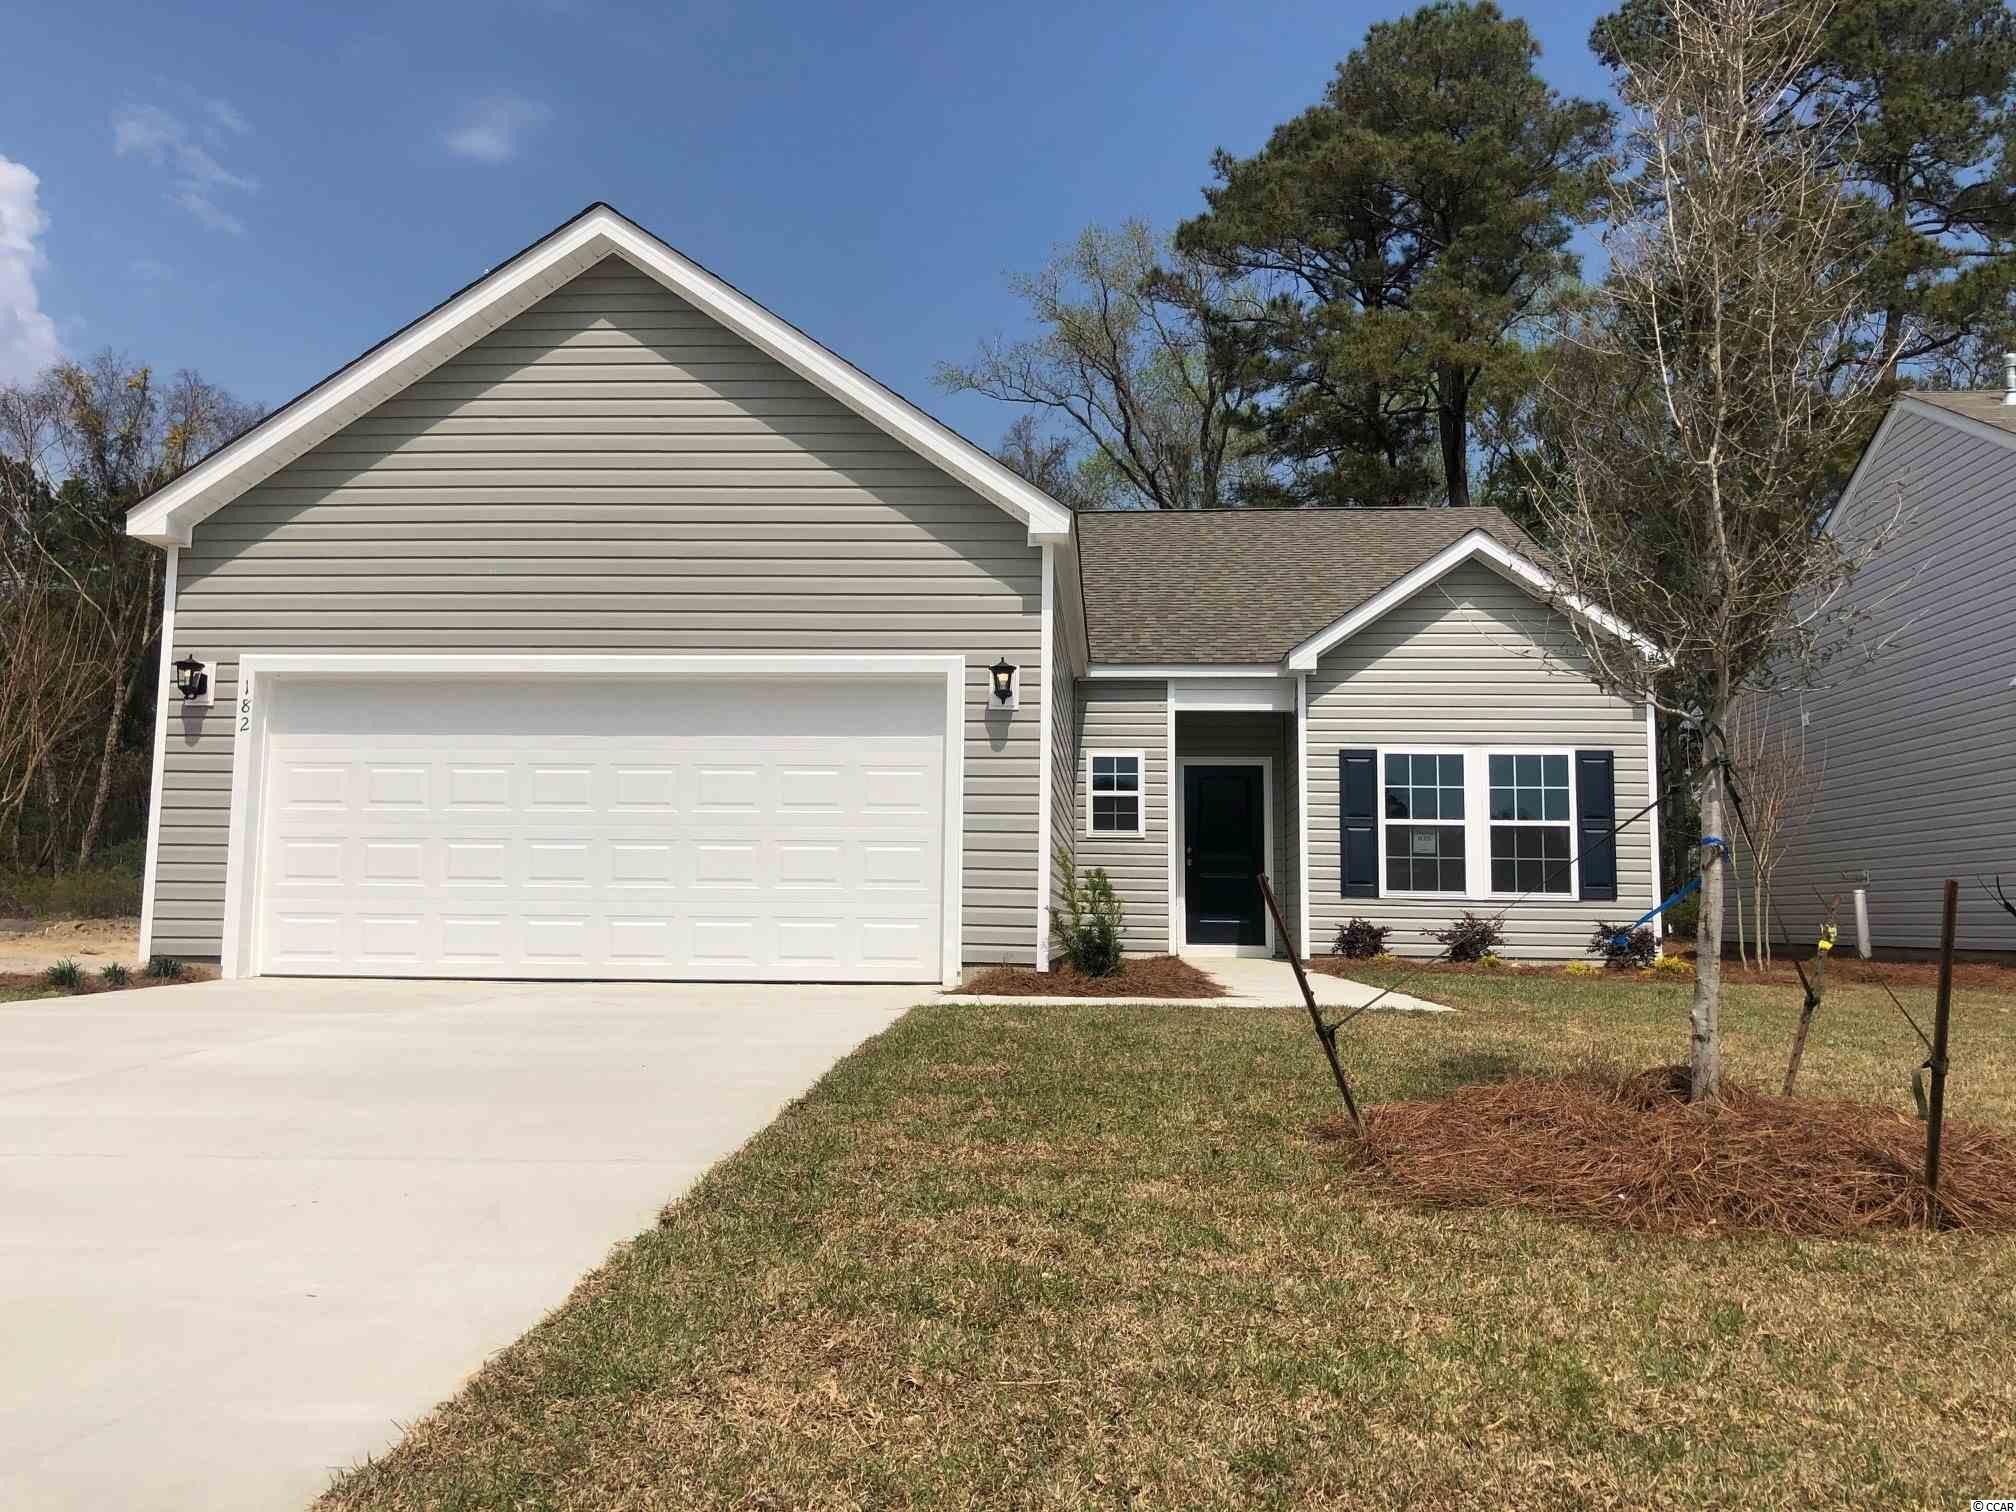 This is a to be built home, taking reservations to build in new phase.  Stop by Sales Center for details.   Hampton Park is a natural Gas Community located on 707 near 544. Easy access to 31, fantastic location! We are located minutes from beaches, shopping, golf, restaurants, medical facilities and more. This is a small 80 home community that will feature lots that view the pond, as well as backyards that have wooded views; a pool and sidewalks. *Photos are of model home and do not reflect color selections and options of actual unit for sale.*